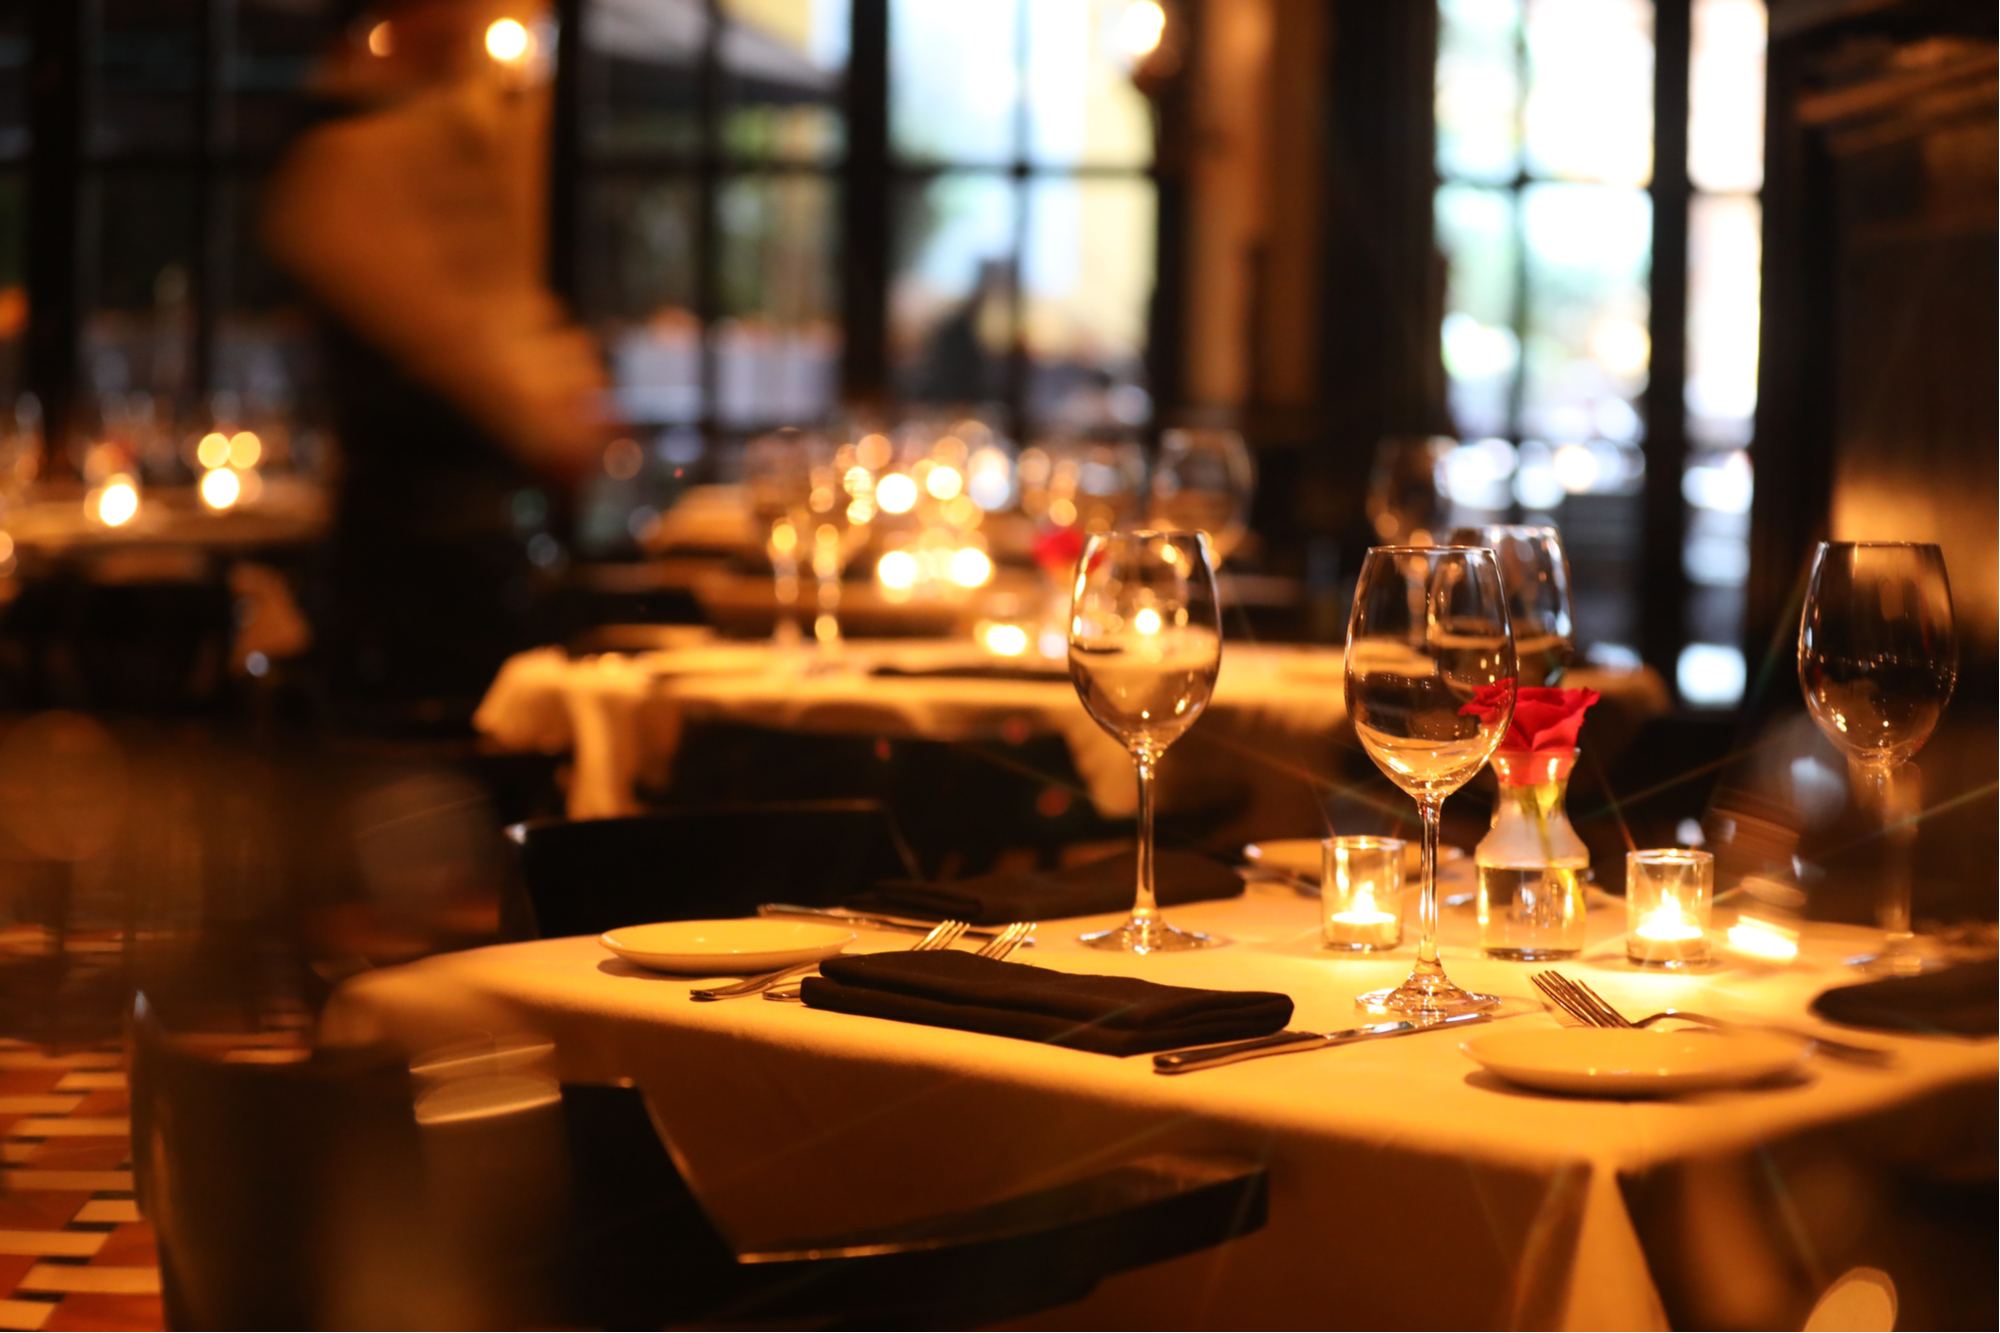 Empty wine glasses, plates, napkins and tea candles on a table at a fine dining restaurant